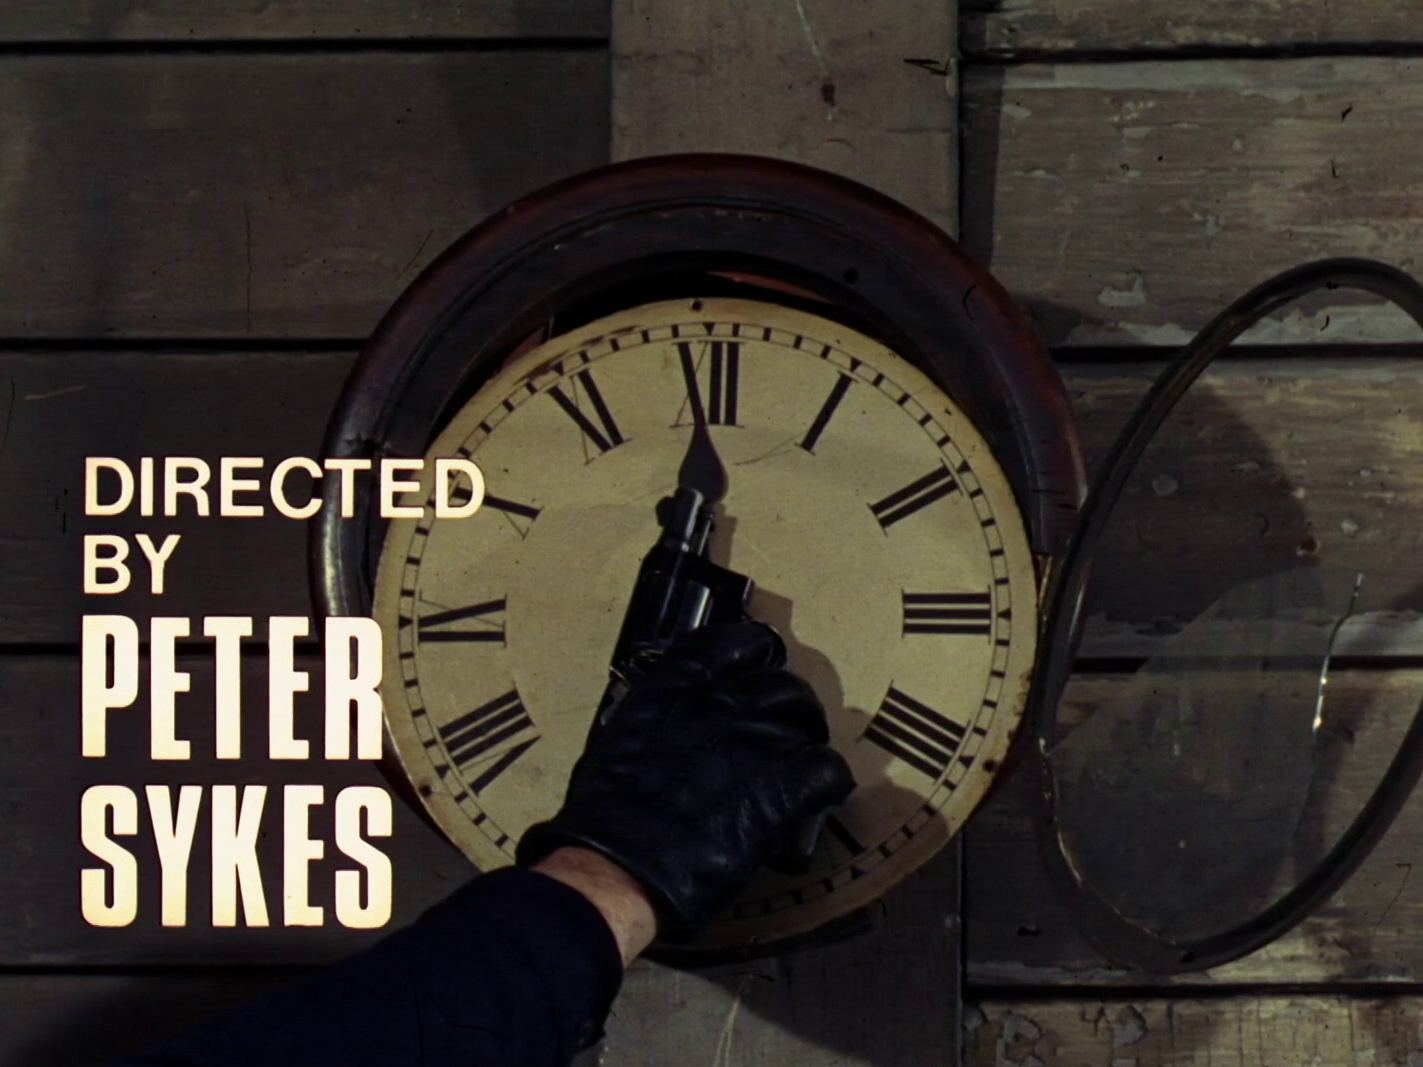 Main title from the 1968 'Noon-Doomsday' episode of The Avengers (1961-69) (3). Directed by Peter Sykes